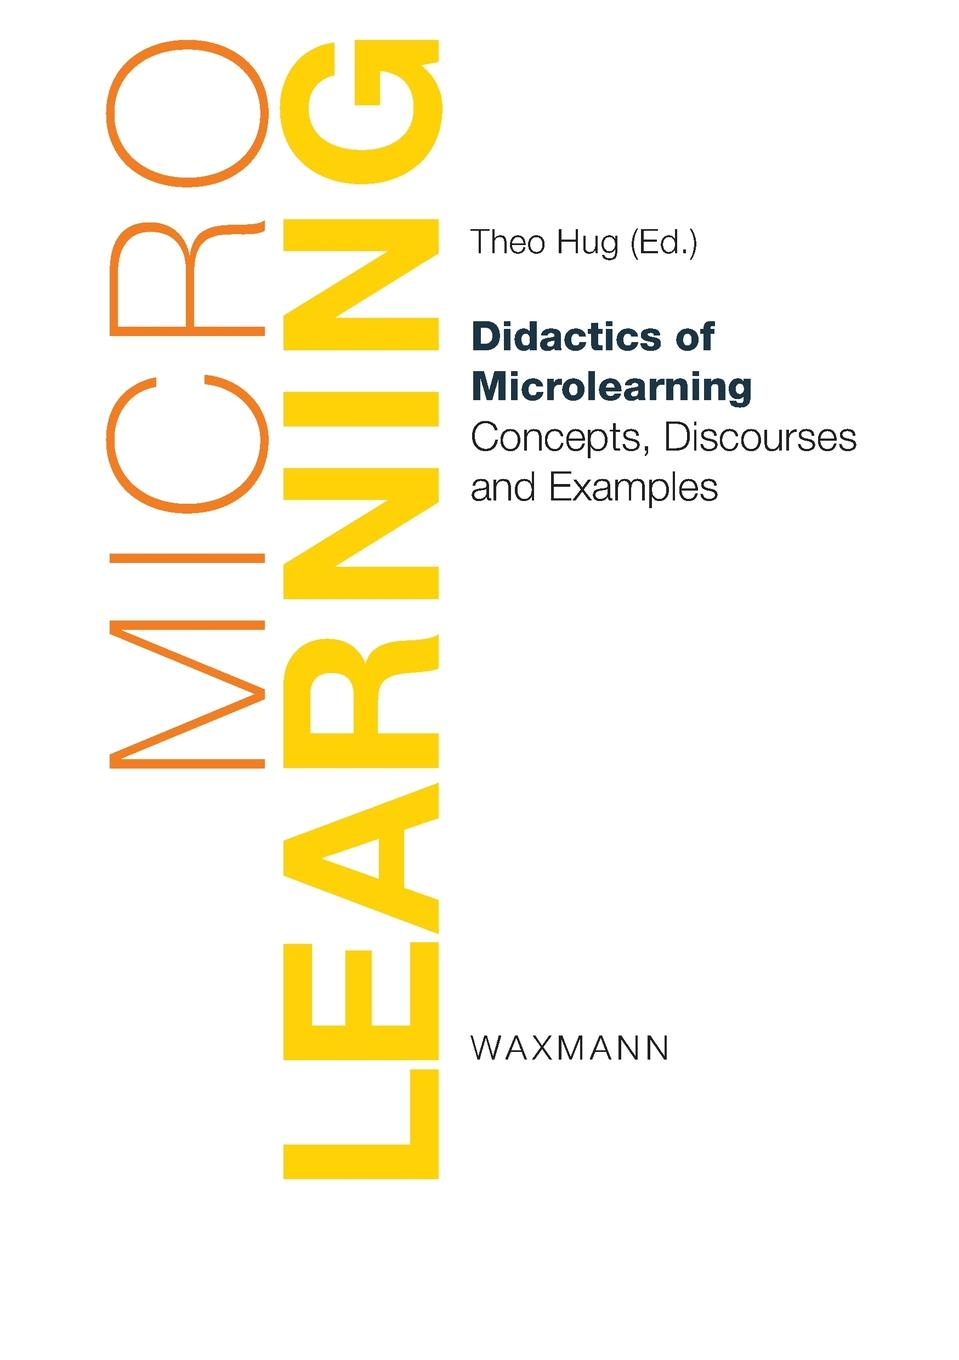 Didactics of Microlearning climatic aspects of spaces